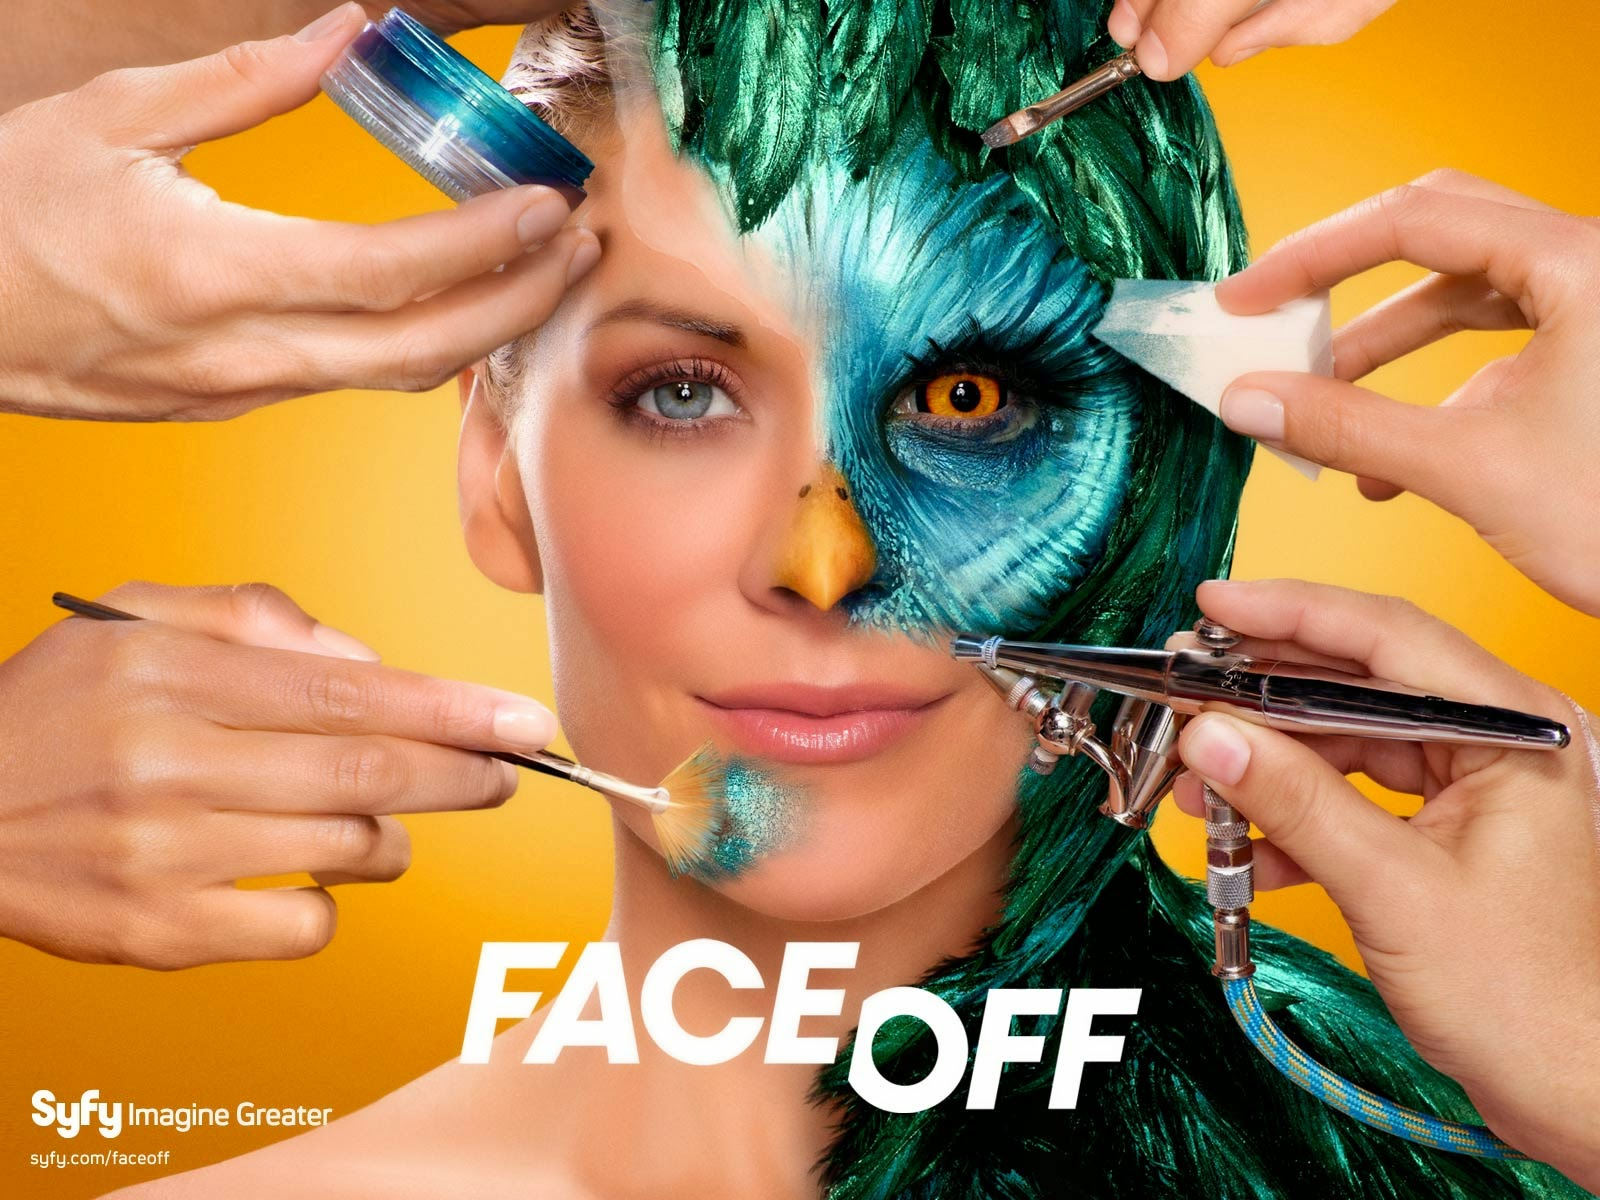 http://www.syfy.com/faceoff/wallpapers